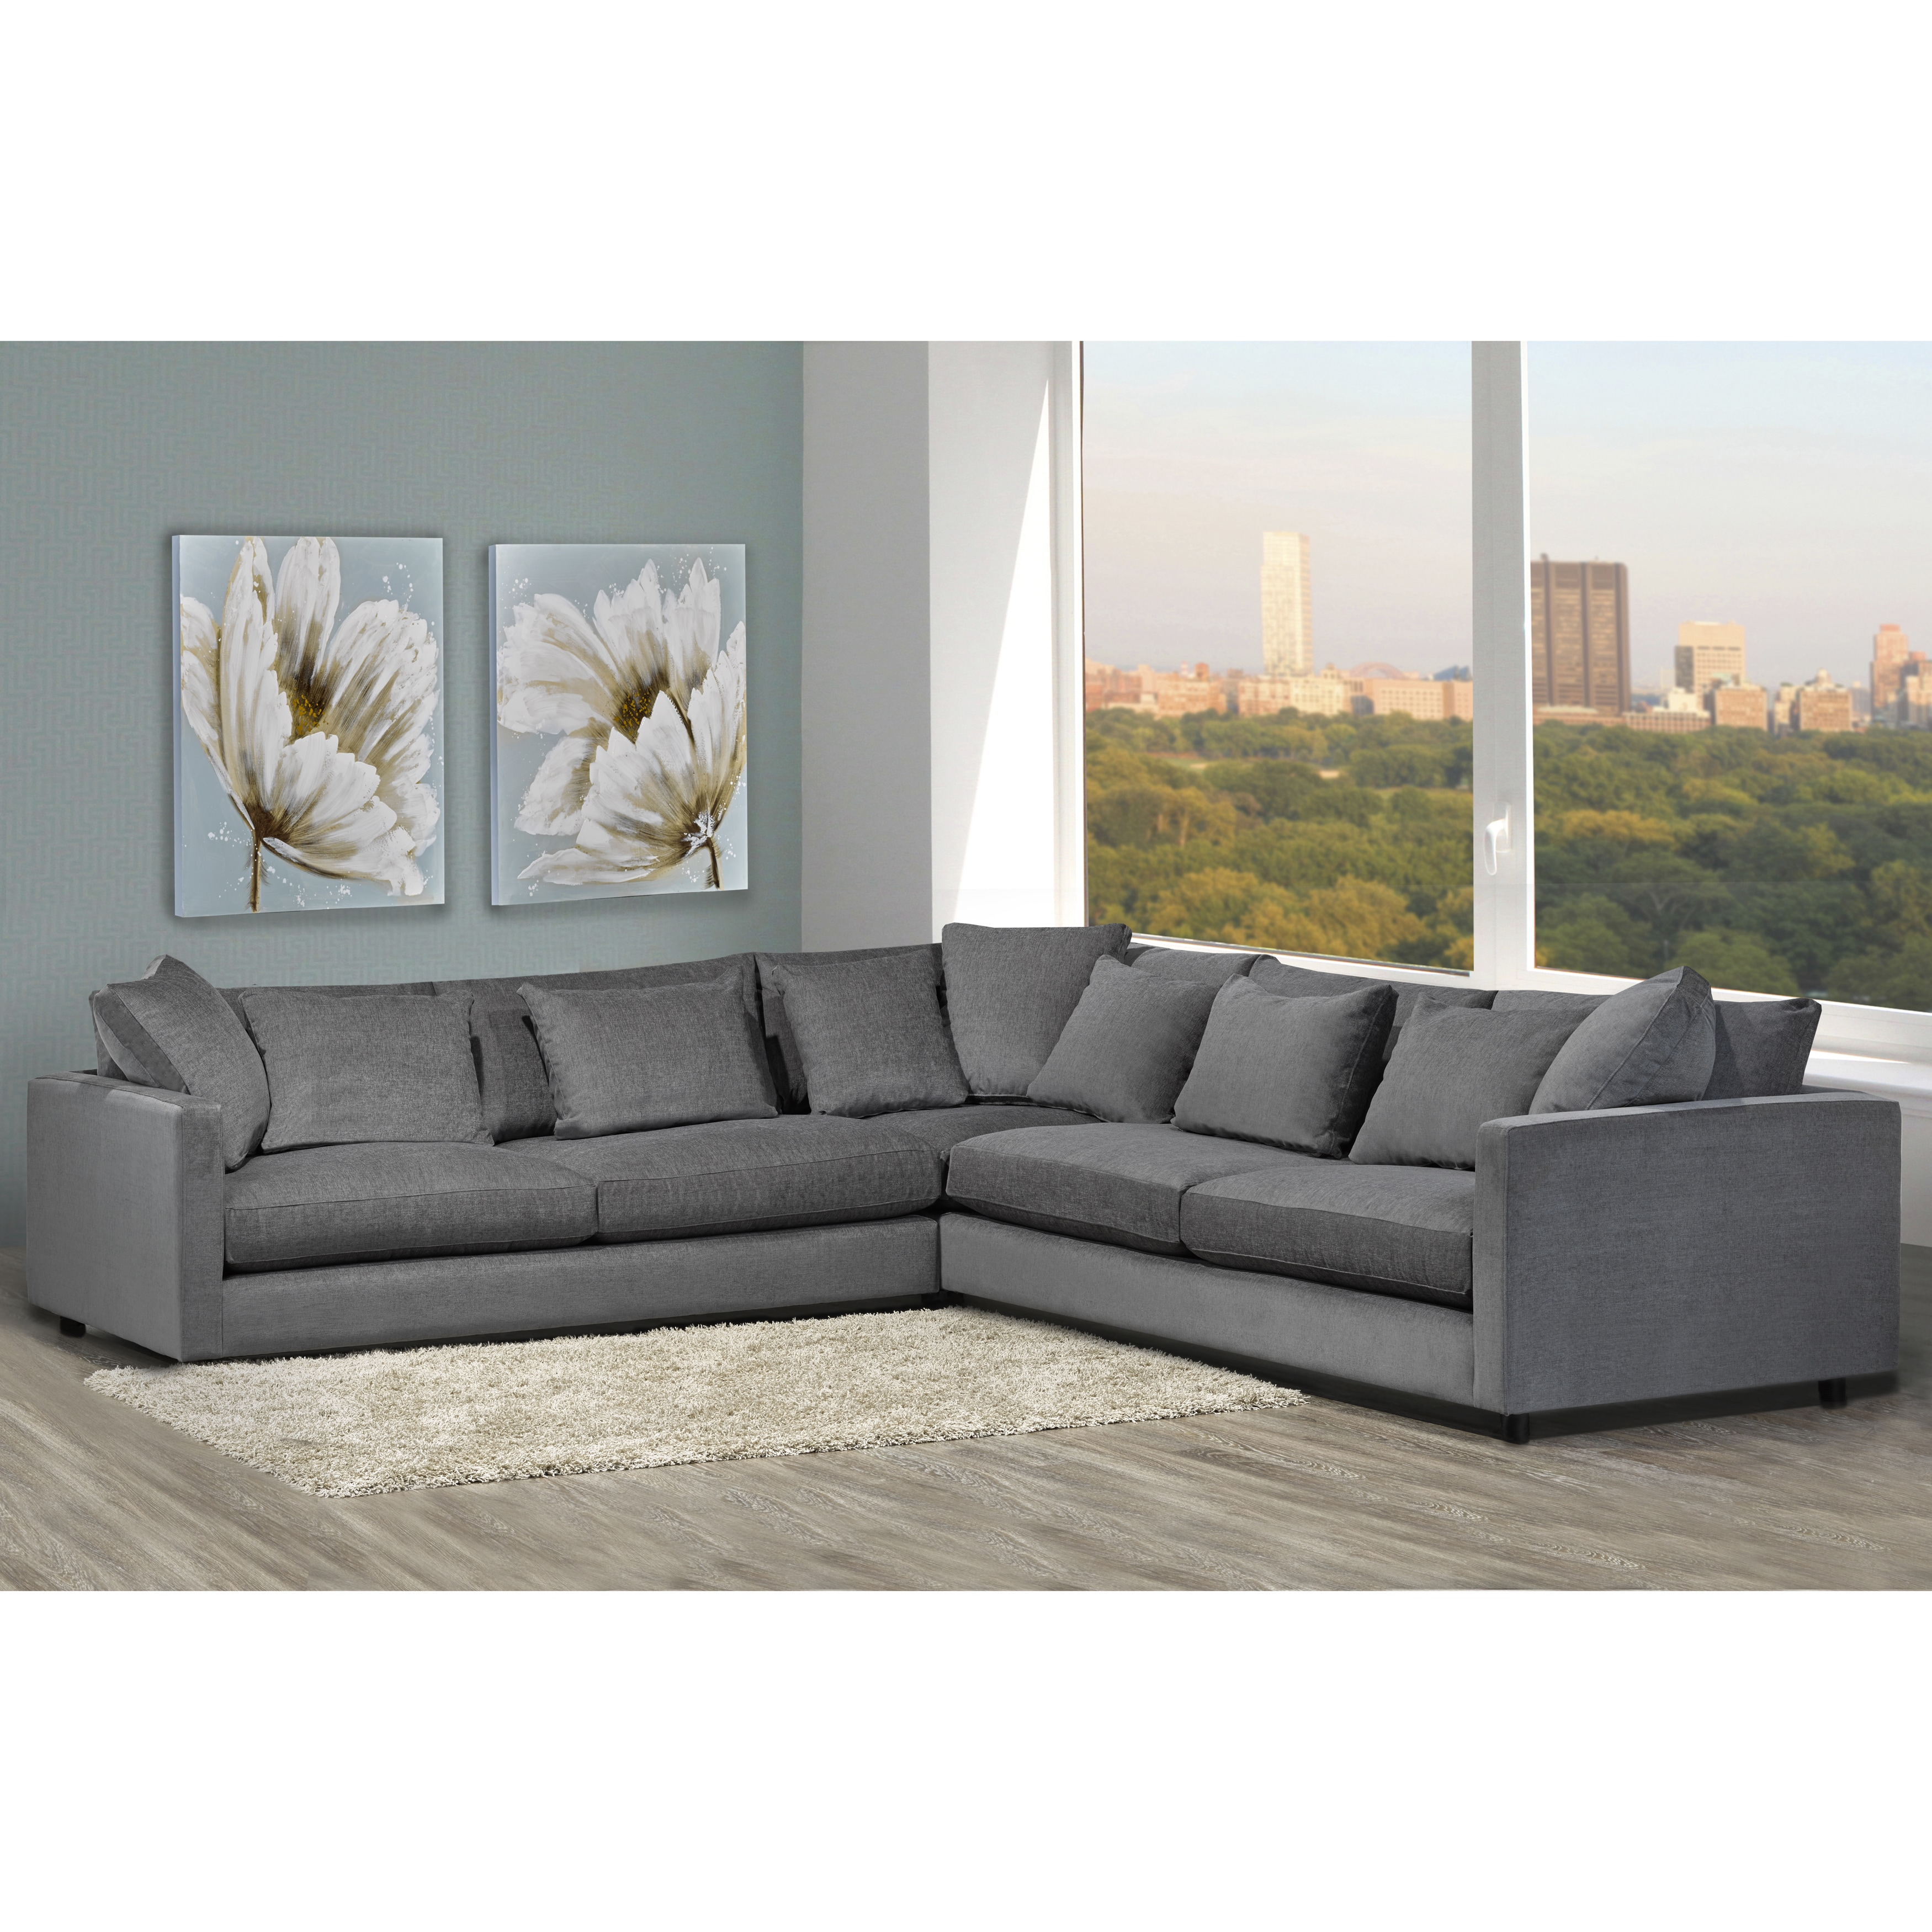 Shop made to order modern lounge down filled grey fabric sectional sofa free shipping today overstock com 13787060